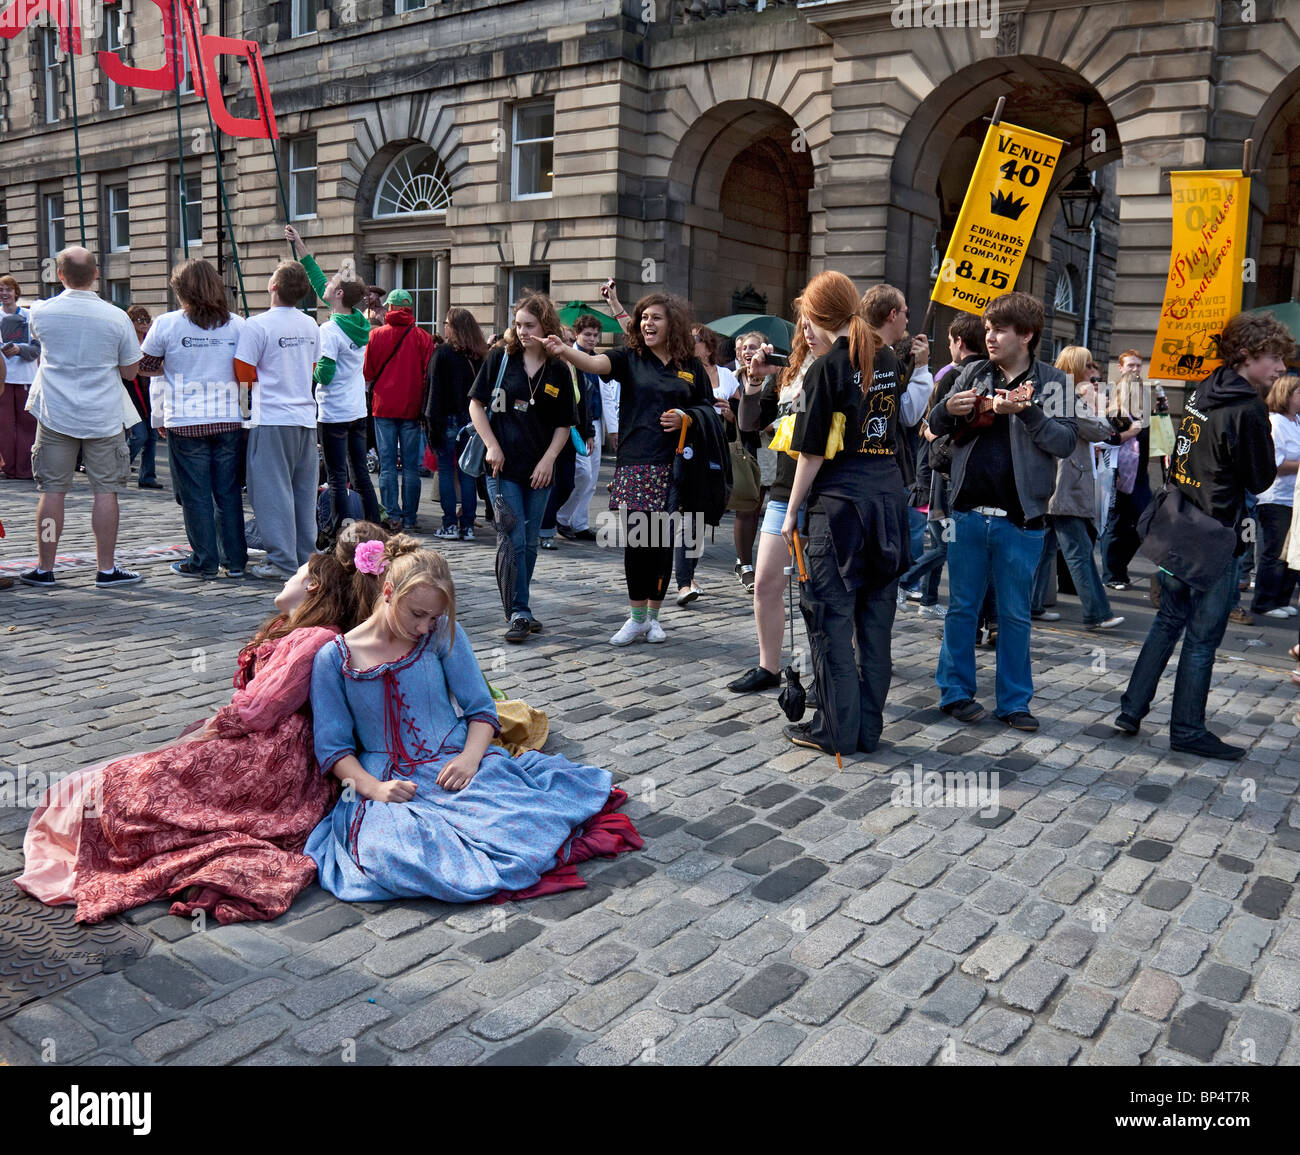 Young actresses promoting their Restoration drama Playhouse Creatures in the Royal Mile / High Street, Edinburgh - Stock Image